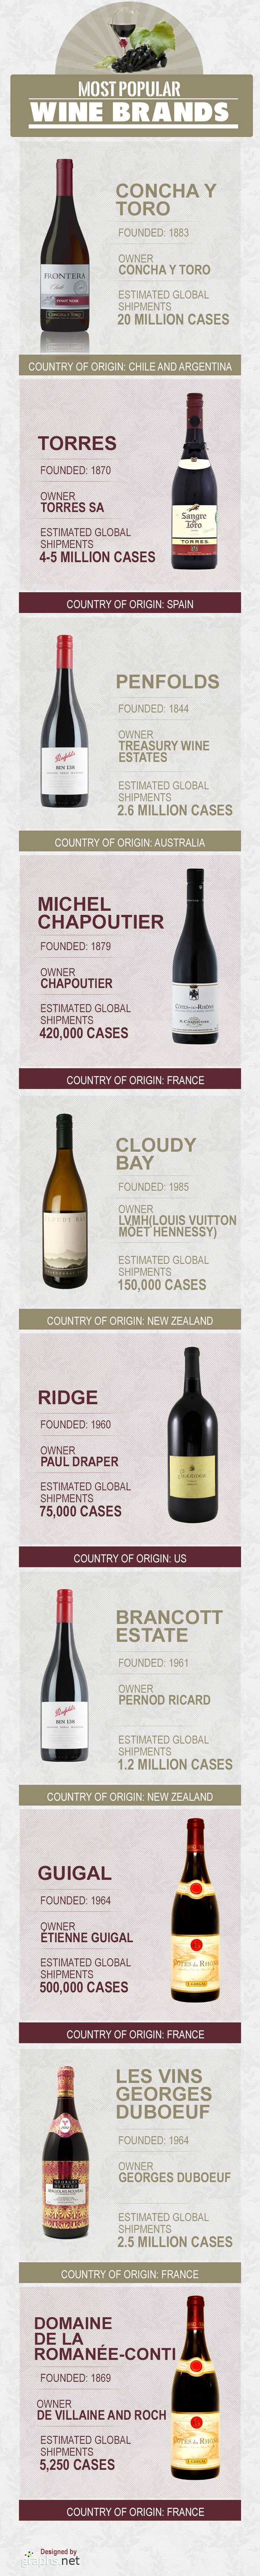 Most Popular Wine Brands in the World